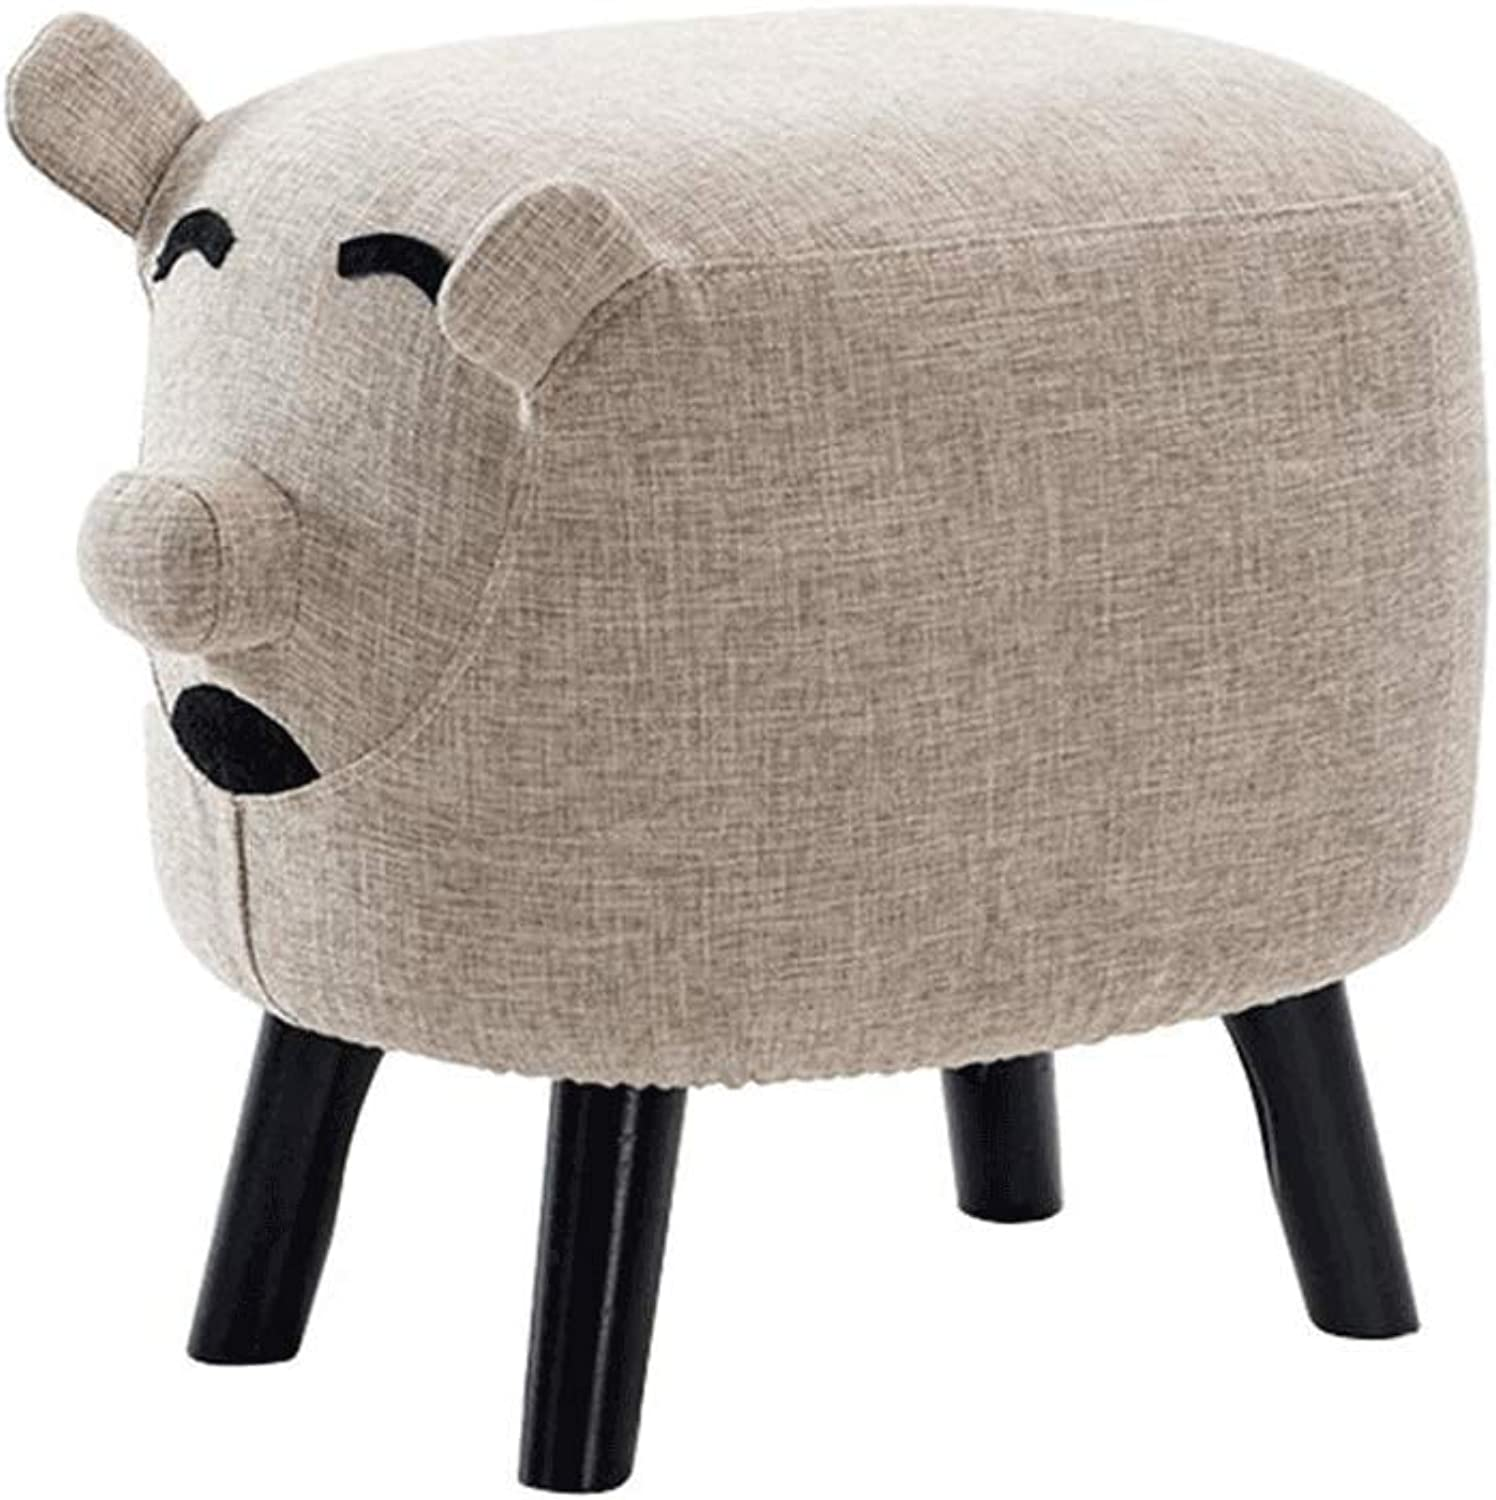 Solid Wood Pig-Shaped Footstool Padded Seat Bench Replacement shoes Bench Makeup Stool Sofa Stool